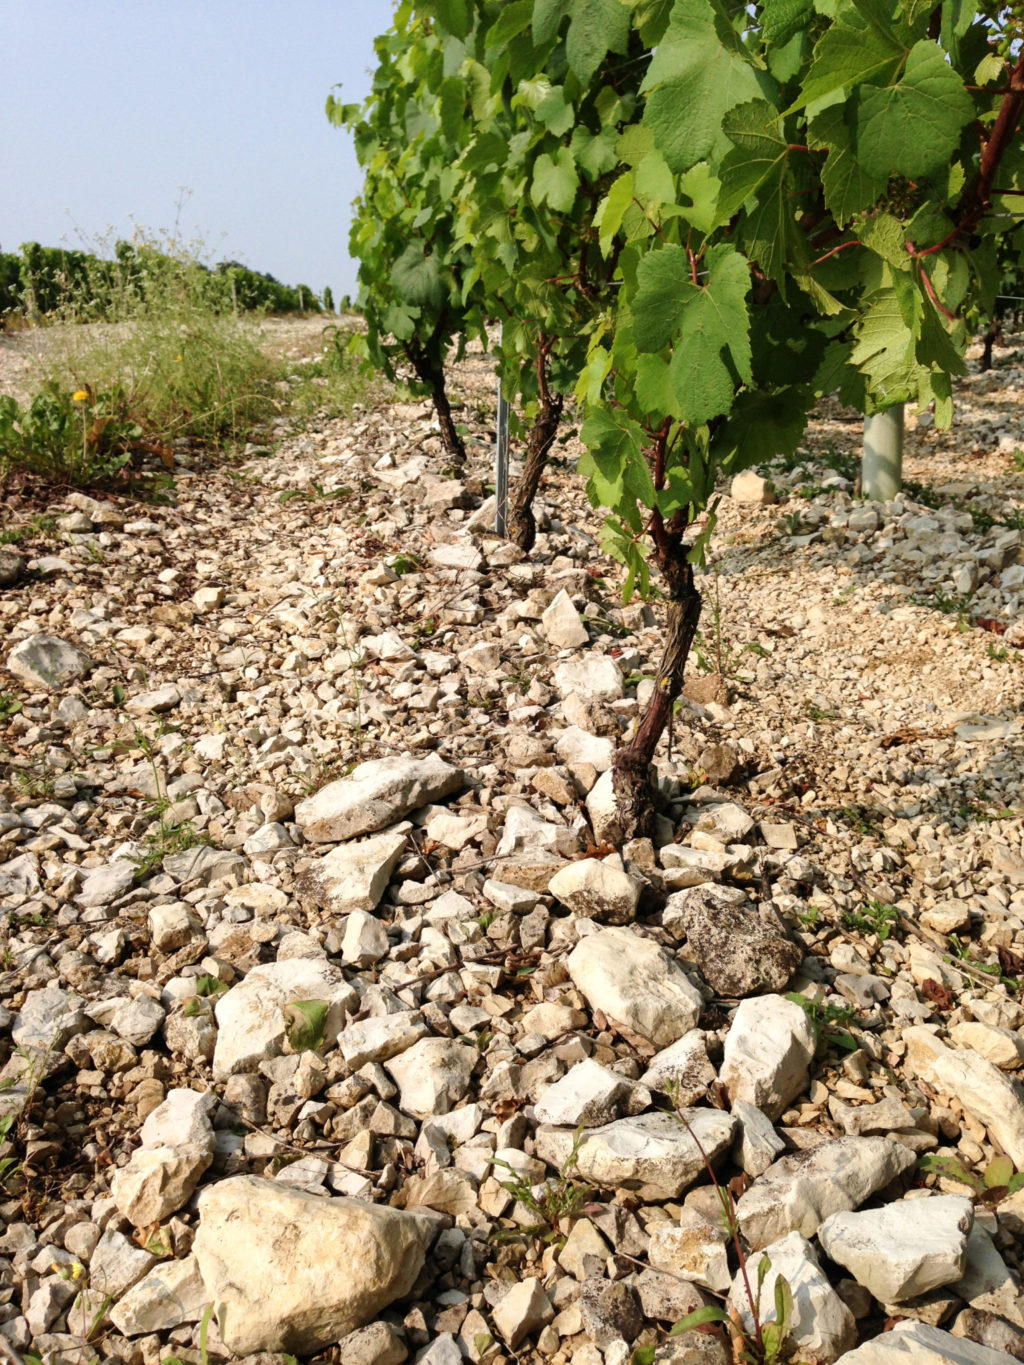 Soils in Chablis, France. Photo by Gloria J. Chang.